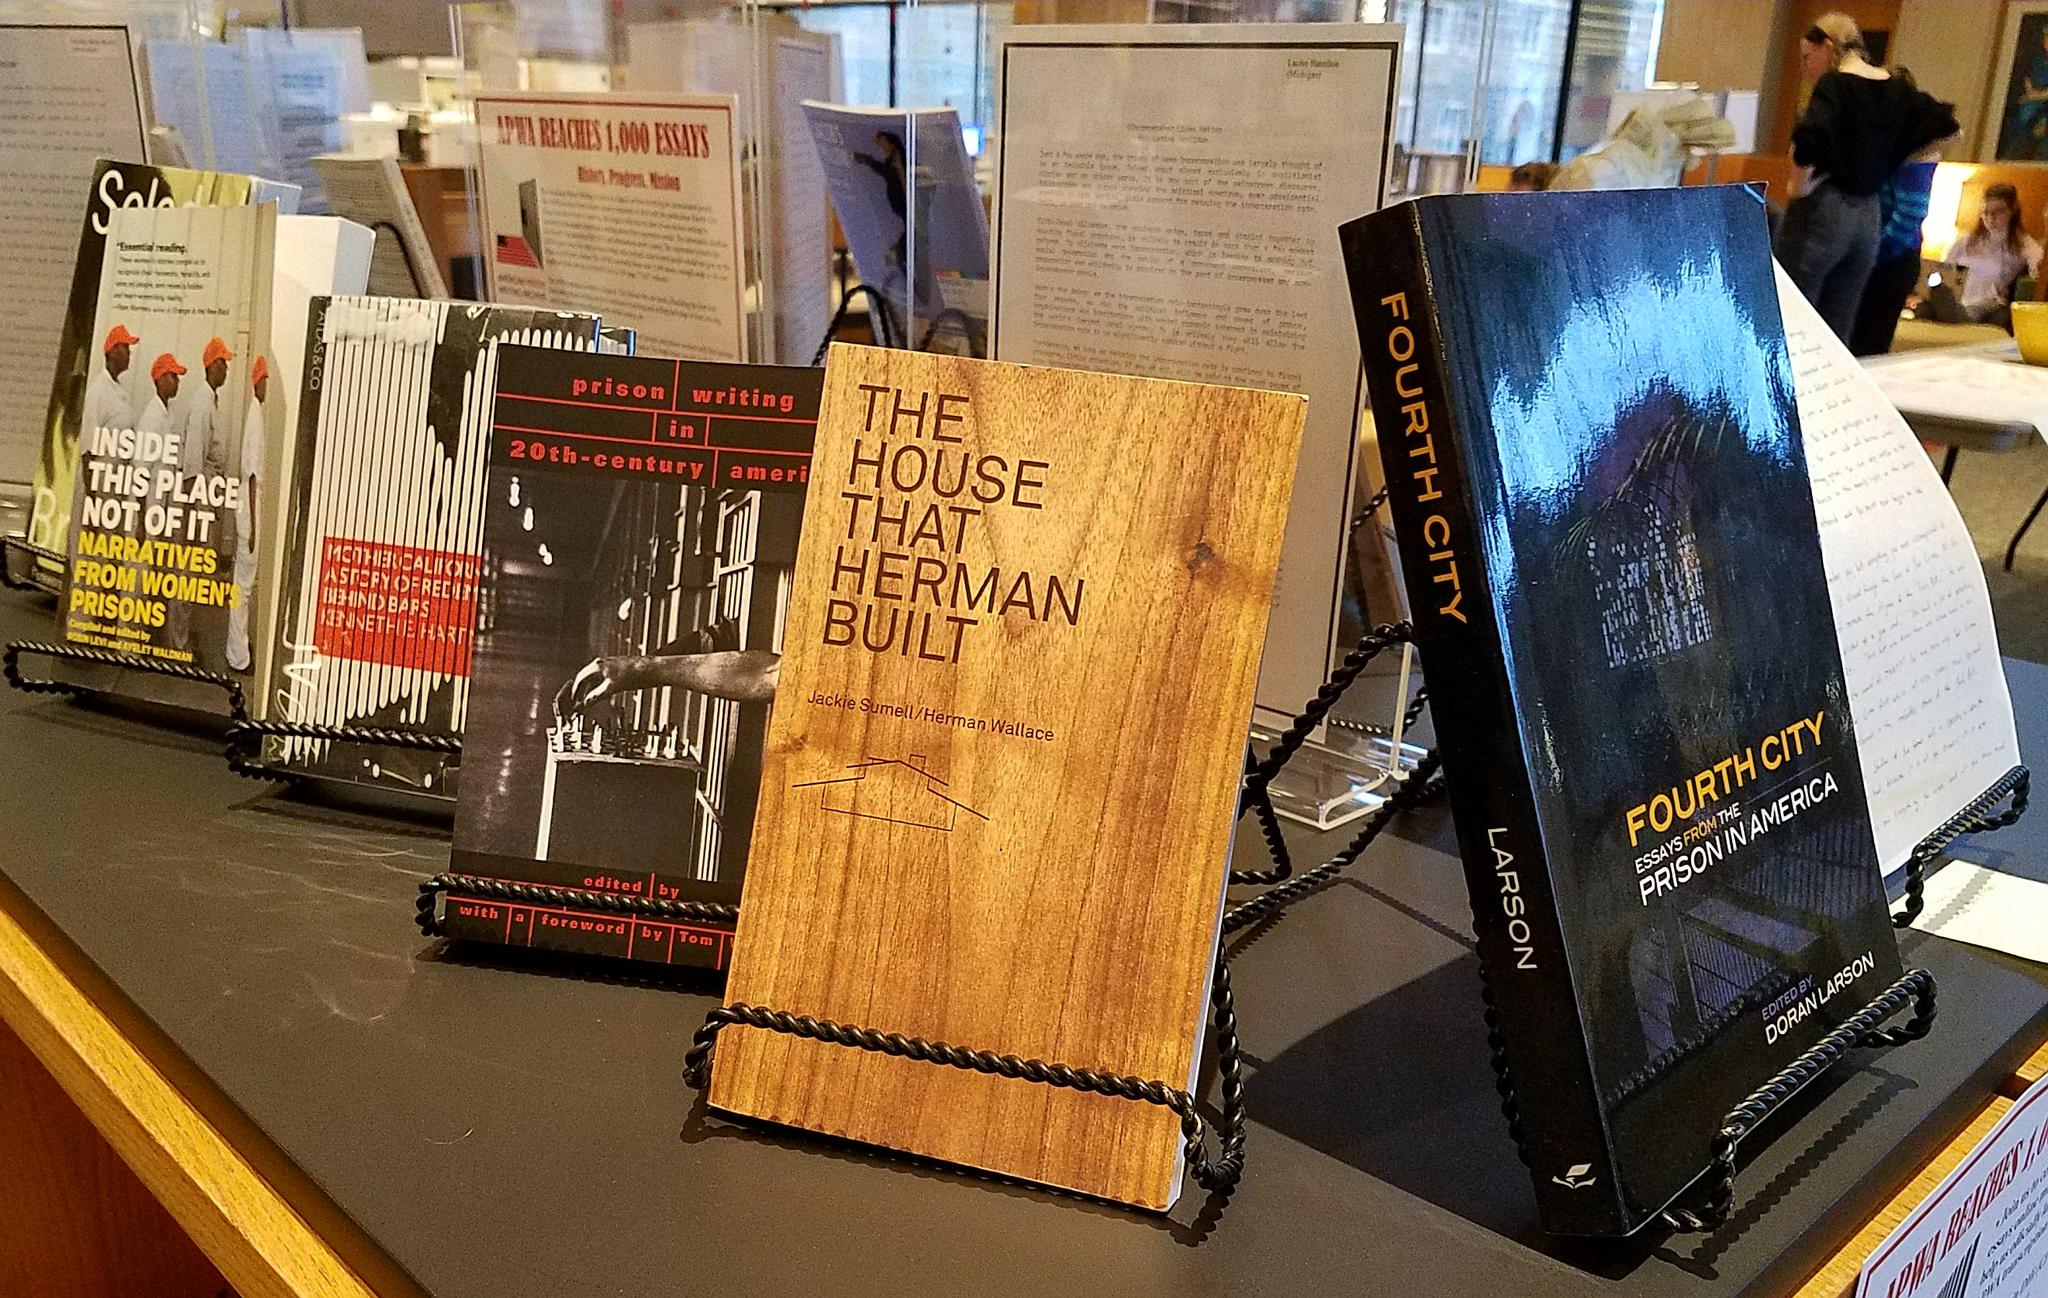 Samples Of Persuasive Essays For High School Students American Prison Writing Archive Exhibit In Burke Library Photo Vige Barrie Essay Examples For High School Students also Help Write Lab Report Th Essay Entered Into American Prison Writing Archive  News  Online Writing